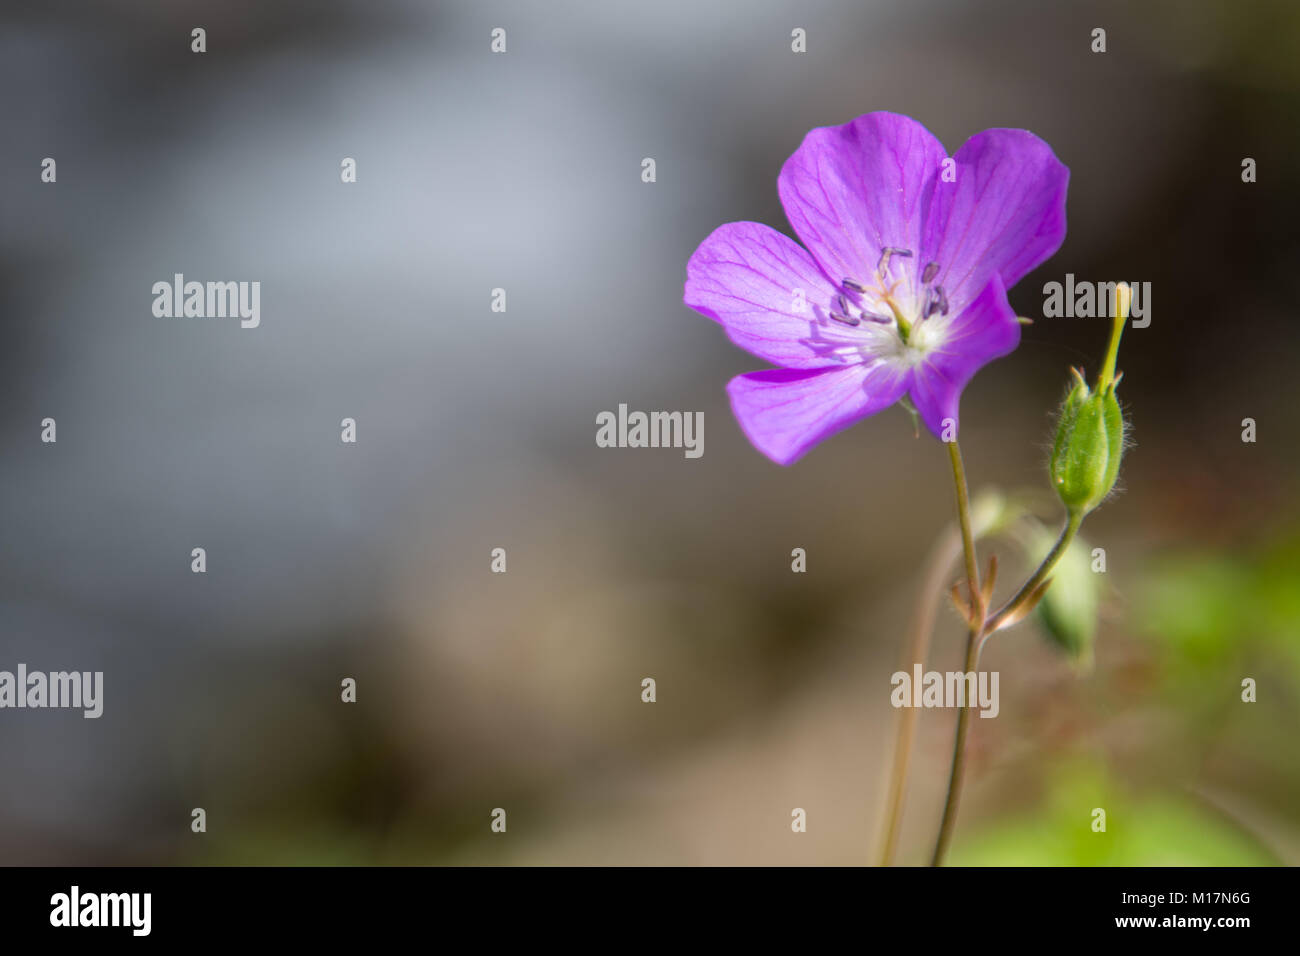 Close Up of Single Purple Phacelia Flower with Copy Space to Left - Stock Image